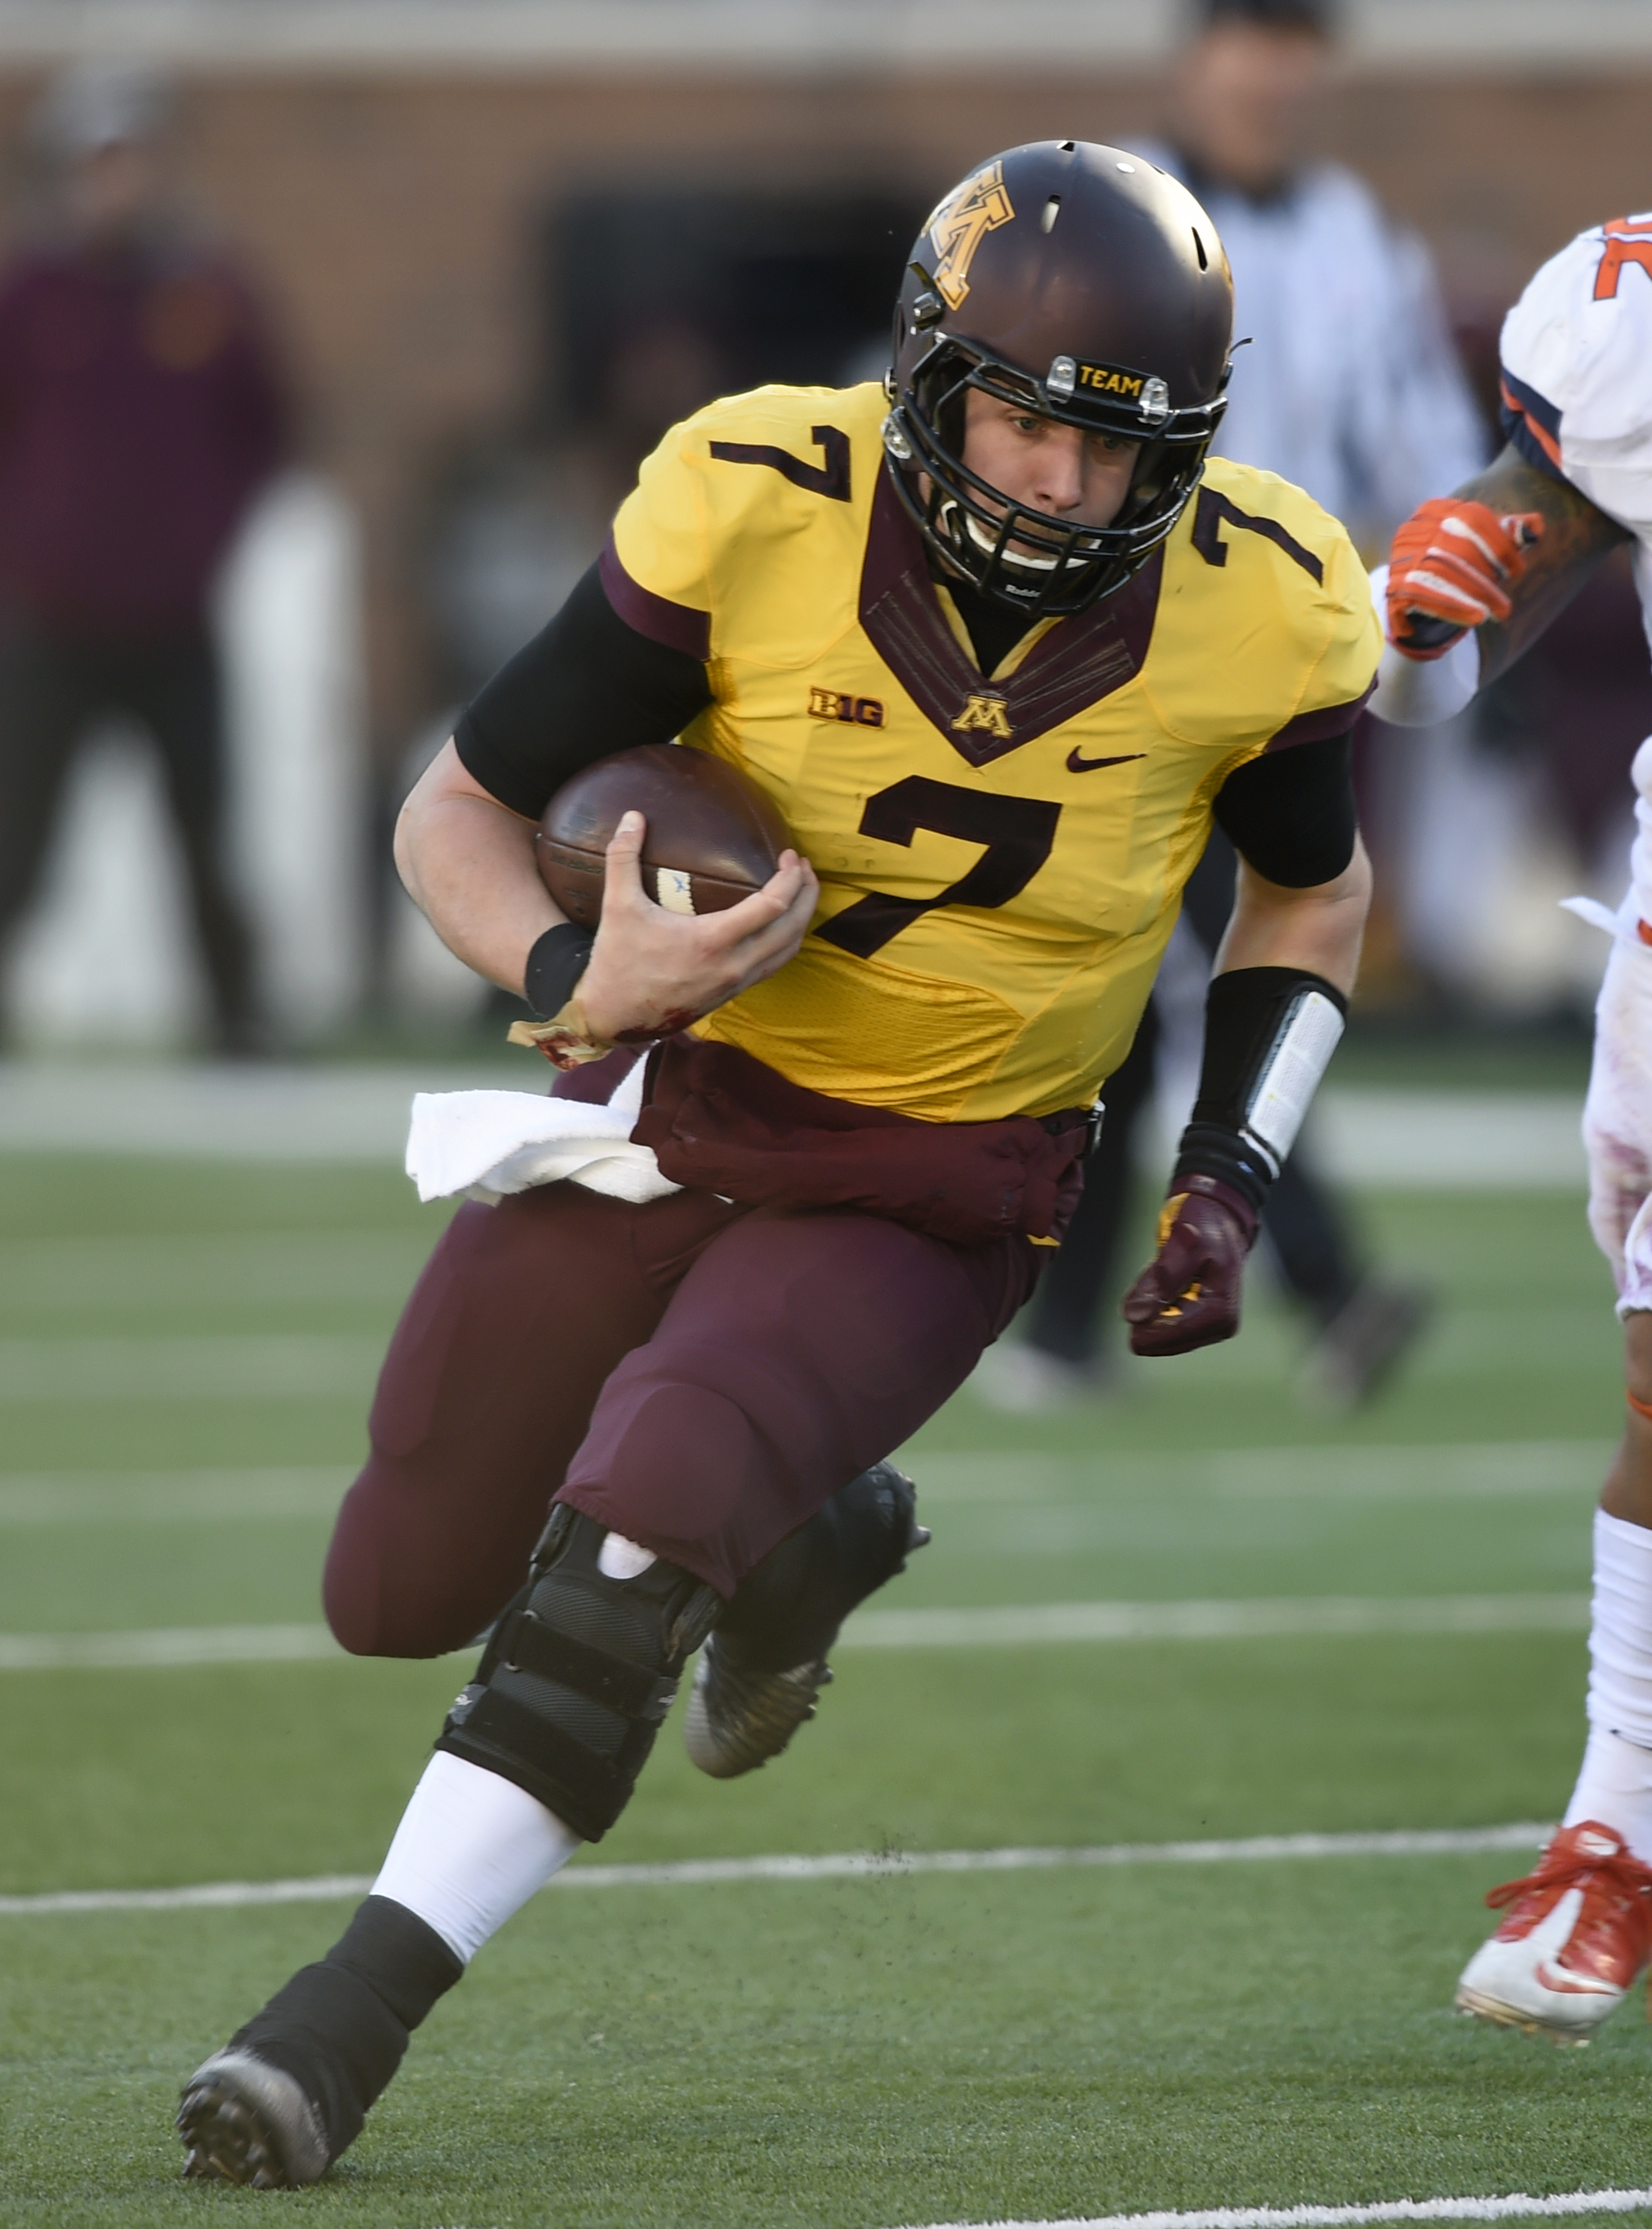 FILE - In this Nov. 21, 2015, file photo, Minnesota's quarterback Mitch Leidner (7) scrambles against Illinois in the first quarter during an NCAA college football game in Minneapolis. Paul Bunyan's Axe is on the line and bowl eligibility for the Gophers